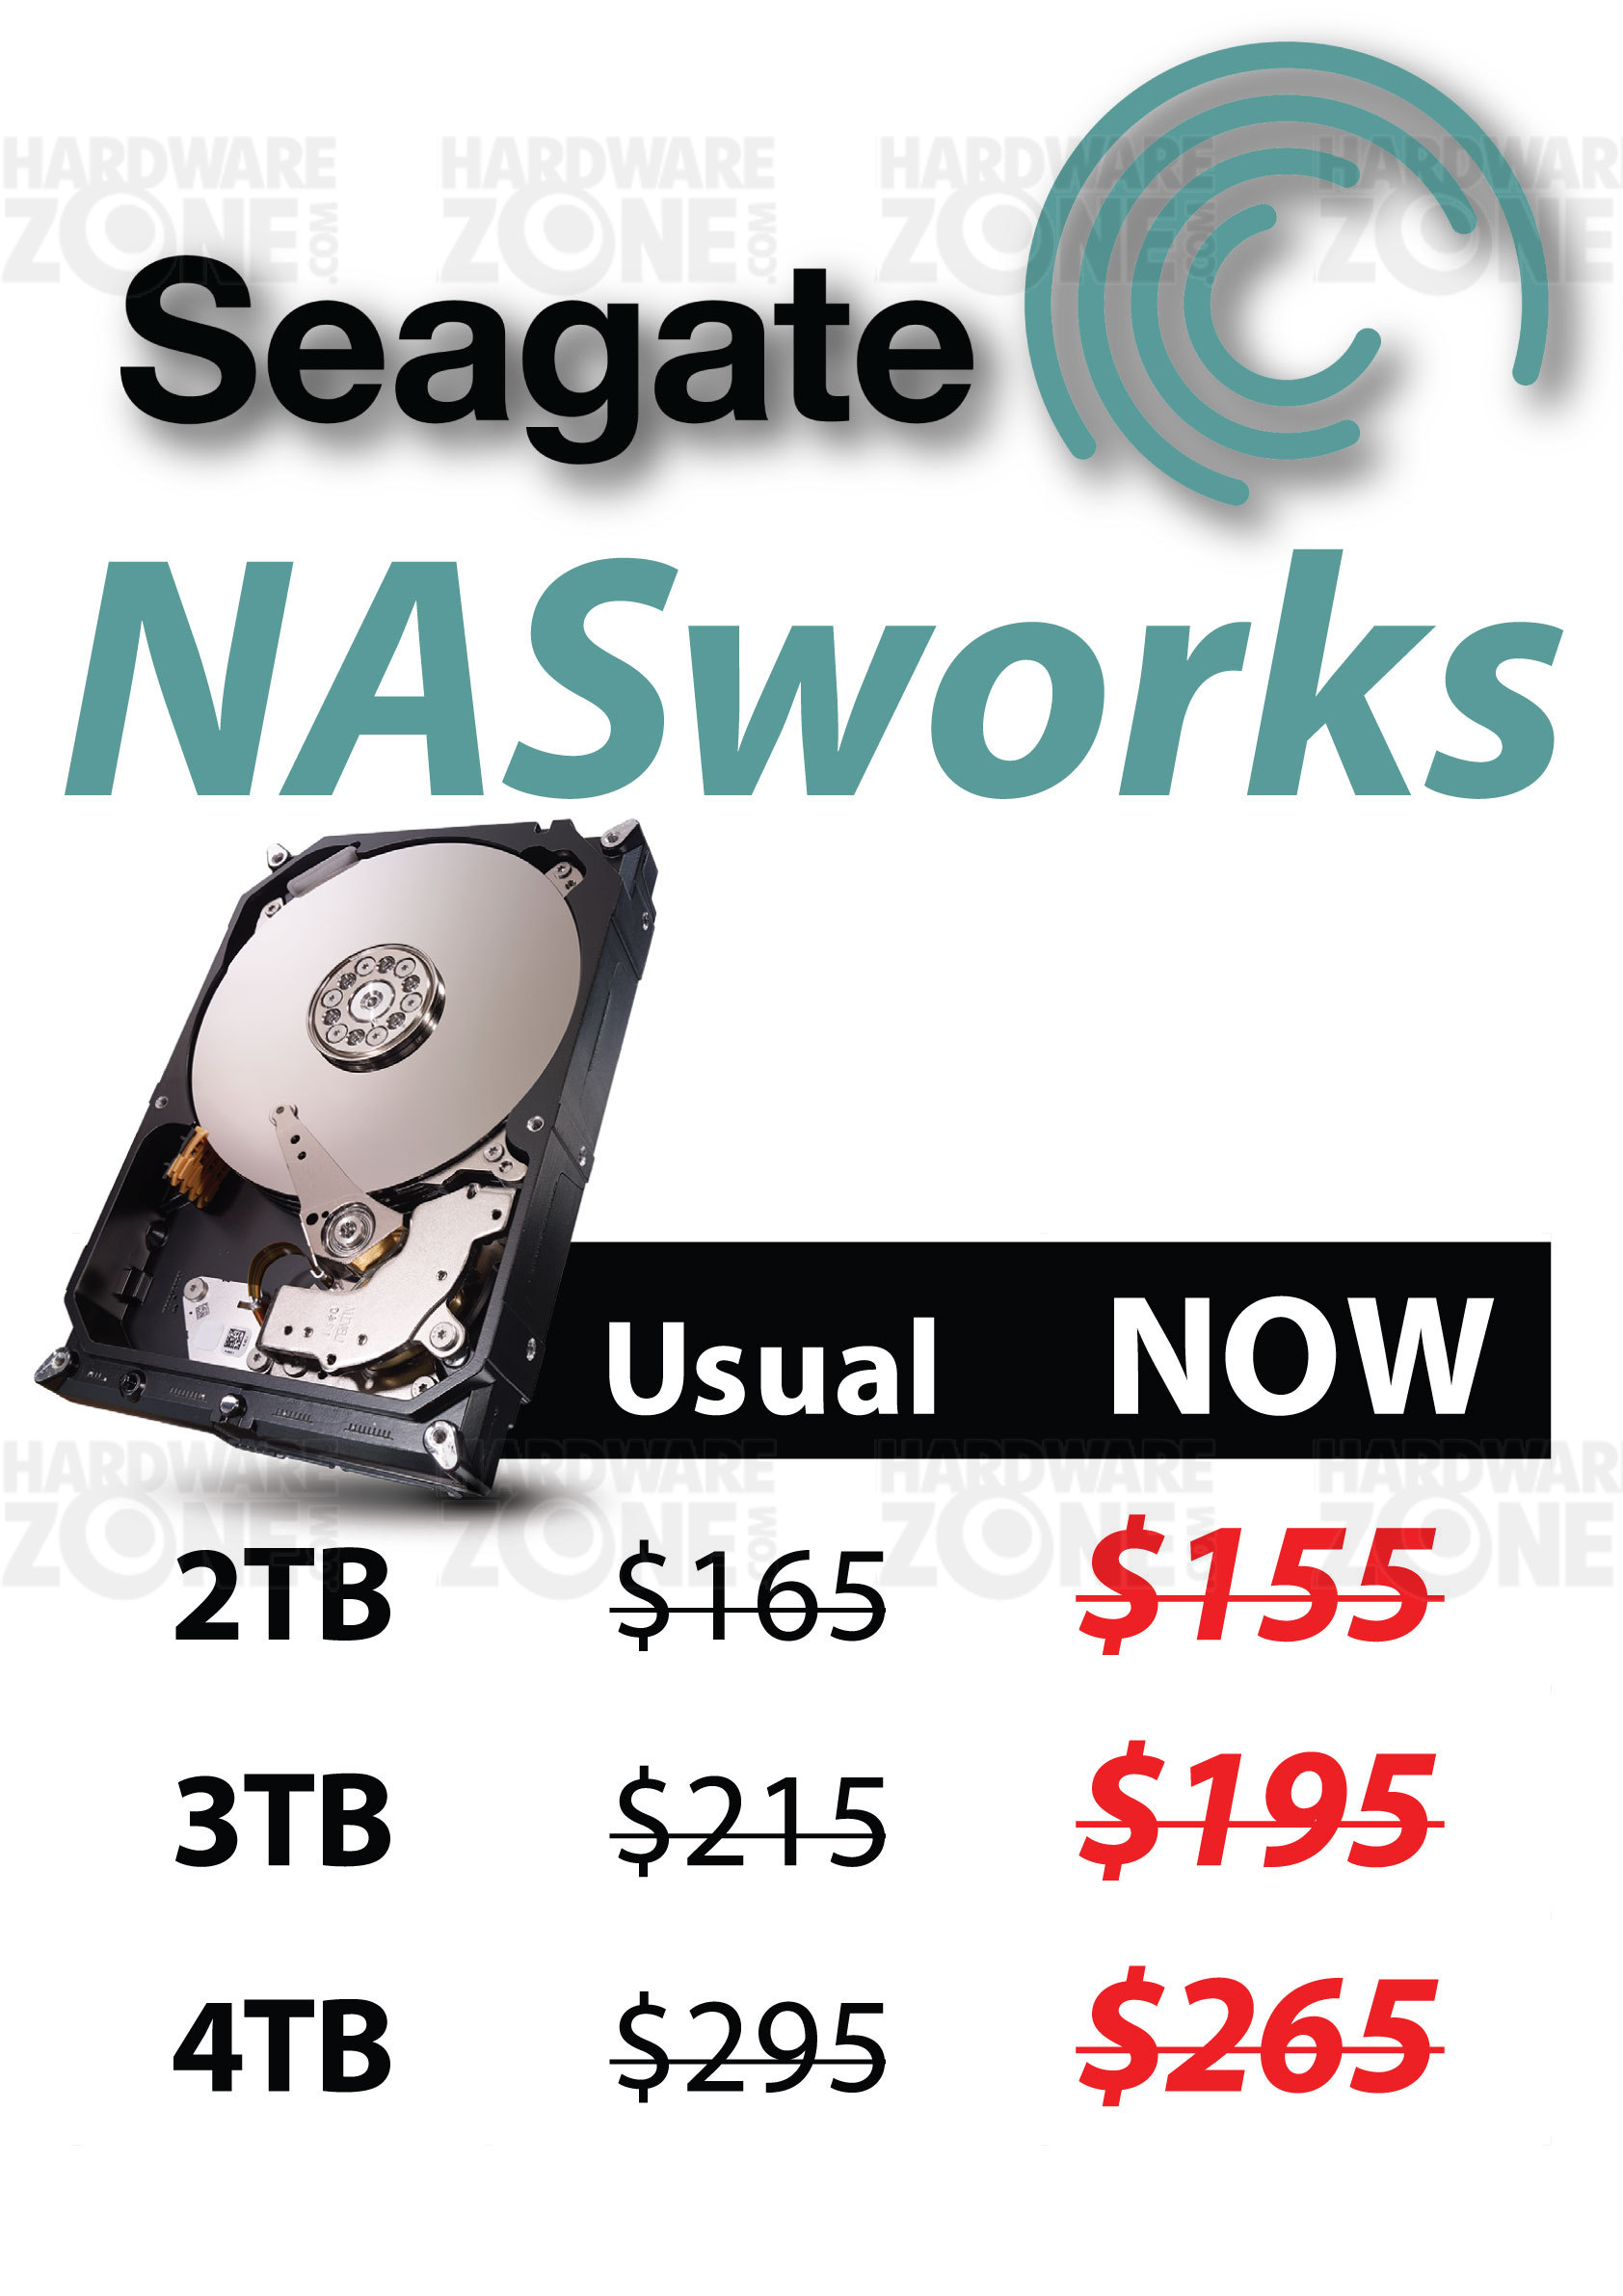 Seagate NASworks HDD